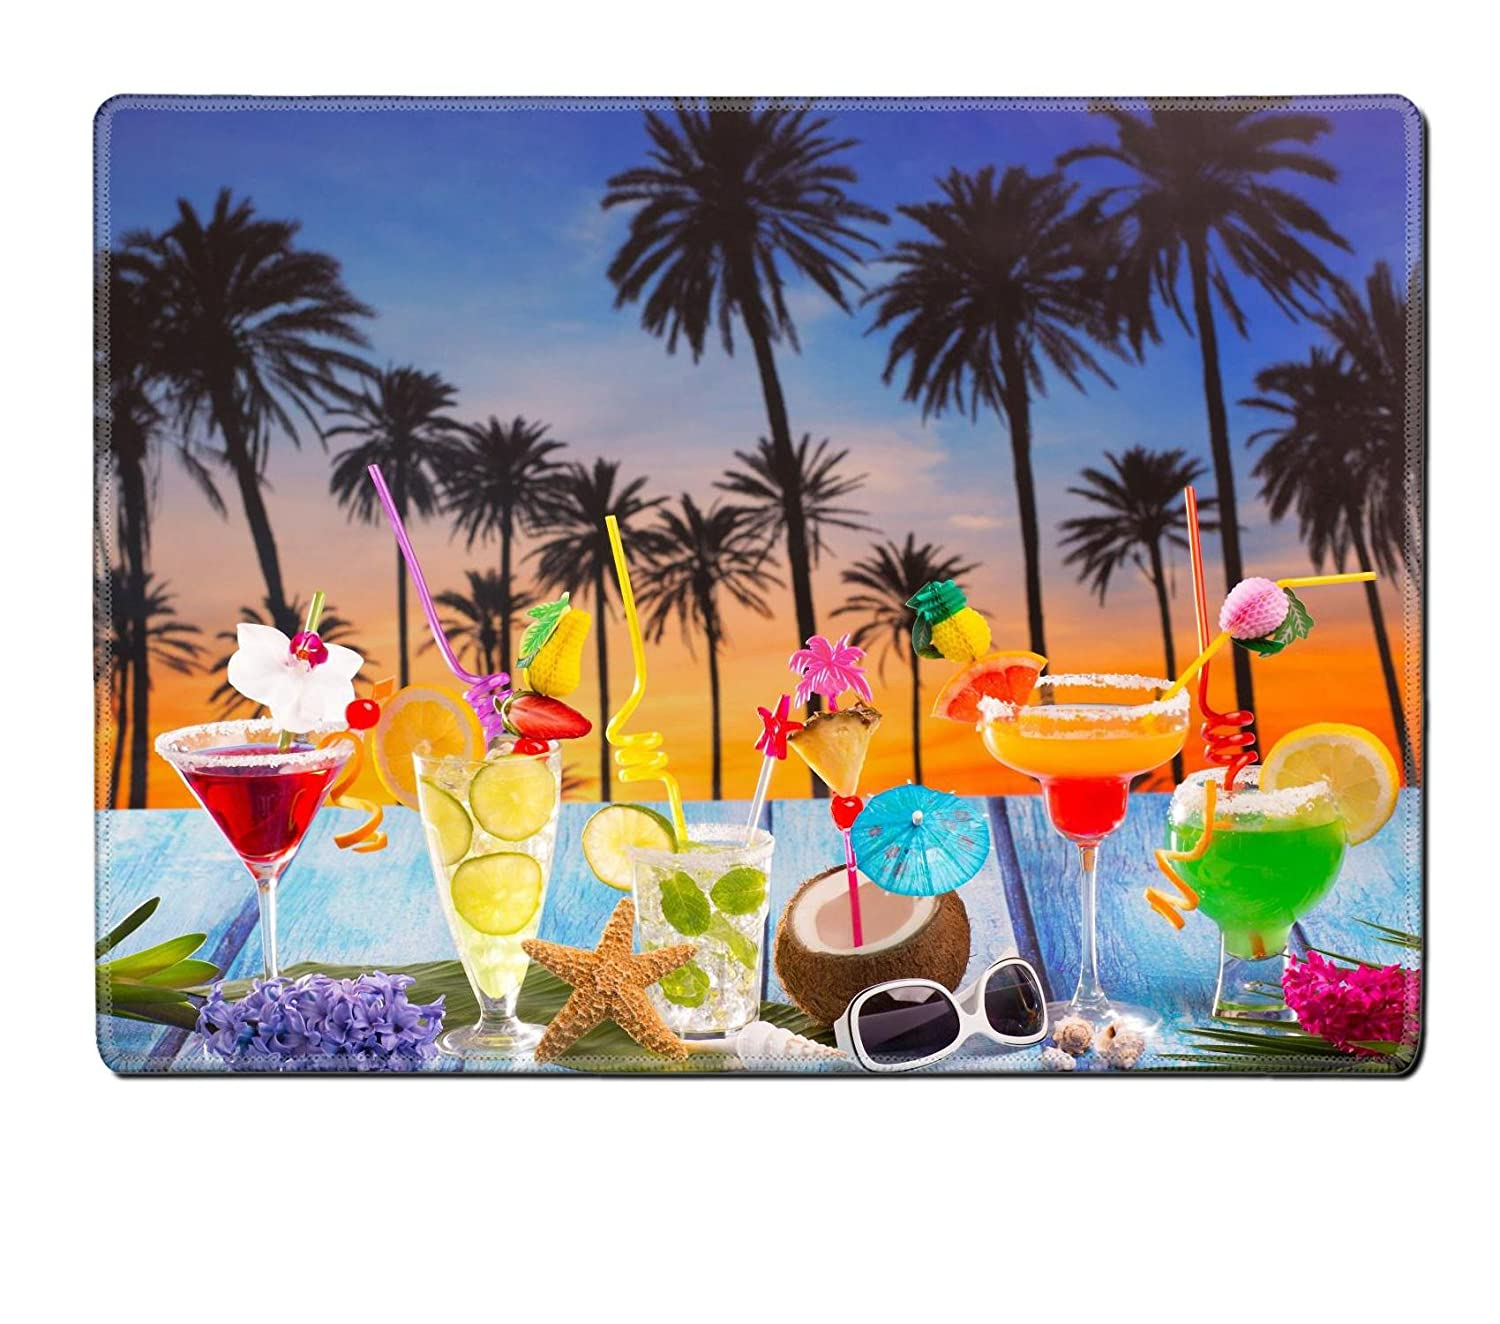 Luxlady天然ゴムプレースマットイメージID : 19616248 Colorful Many Tropical Cocktails in tropical blue wood Palm Tree Sunset With Coconut Mojito Pepermint Margarita UEAEAEaBwA_COLORFUL MANY TROPIC_855  978 B06VT3N31R